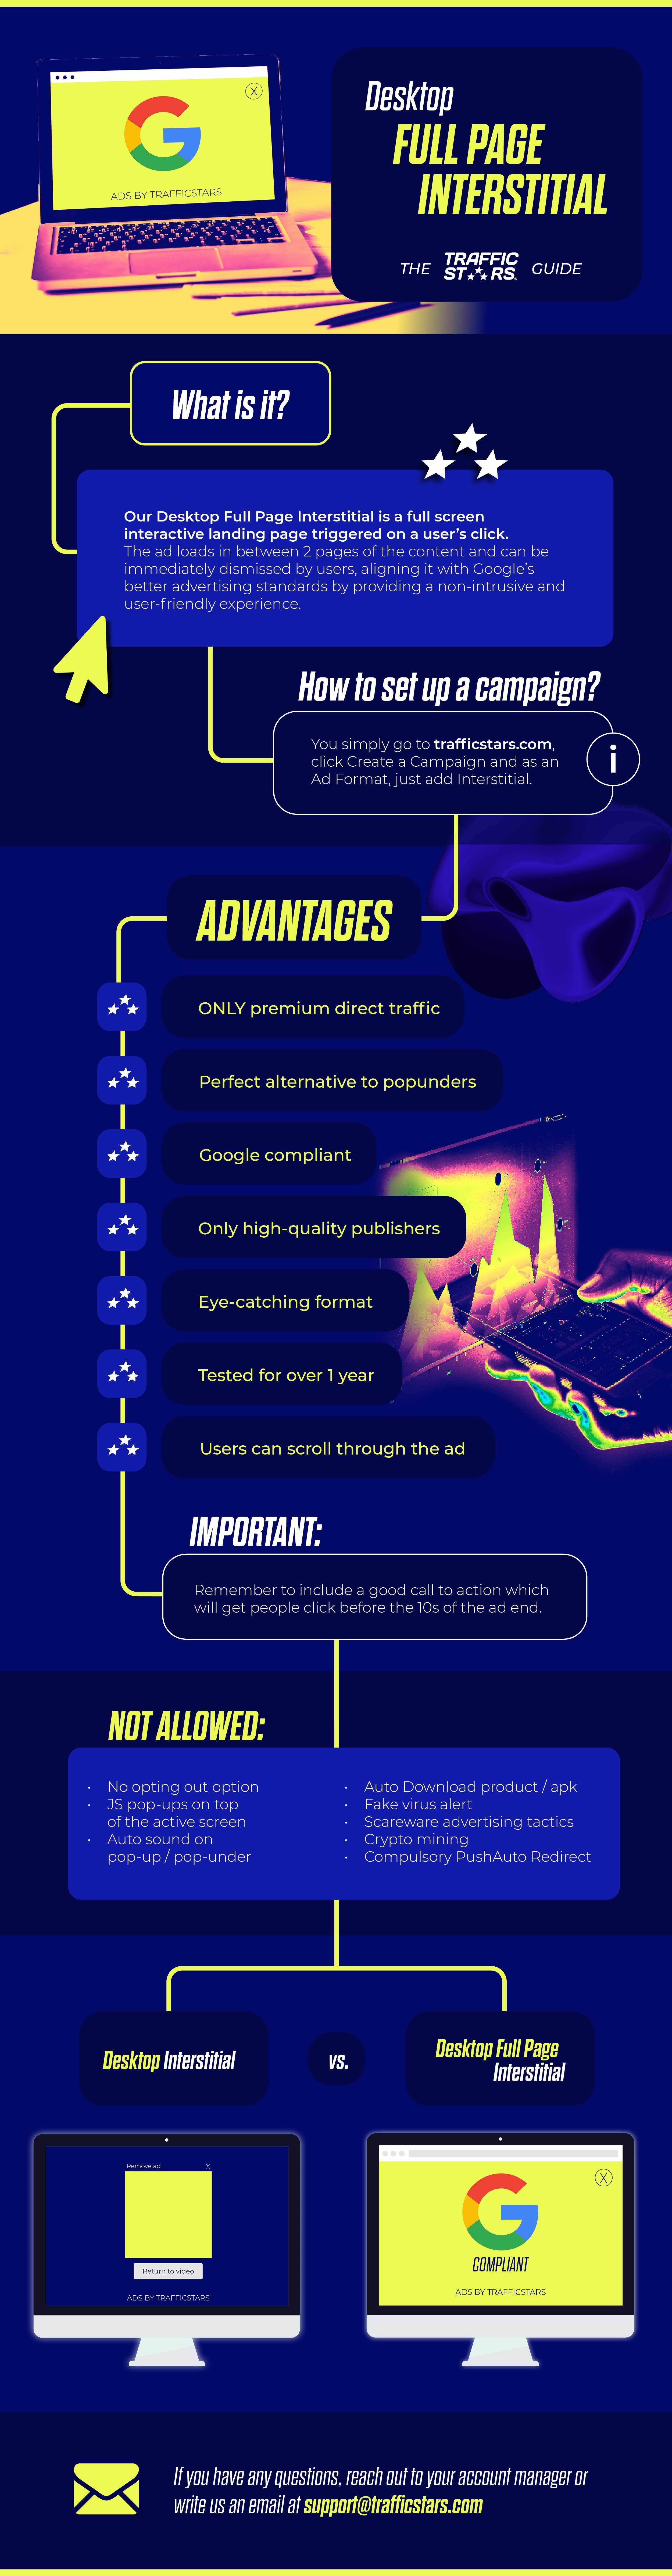 Full Page Desktop Interstitial infographic